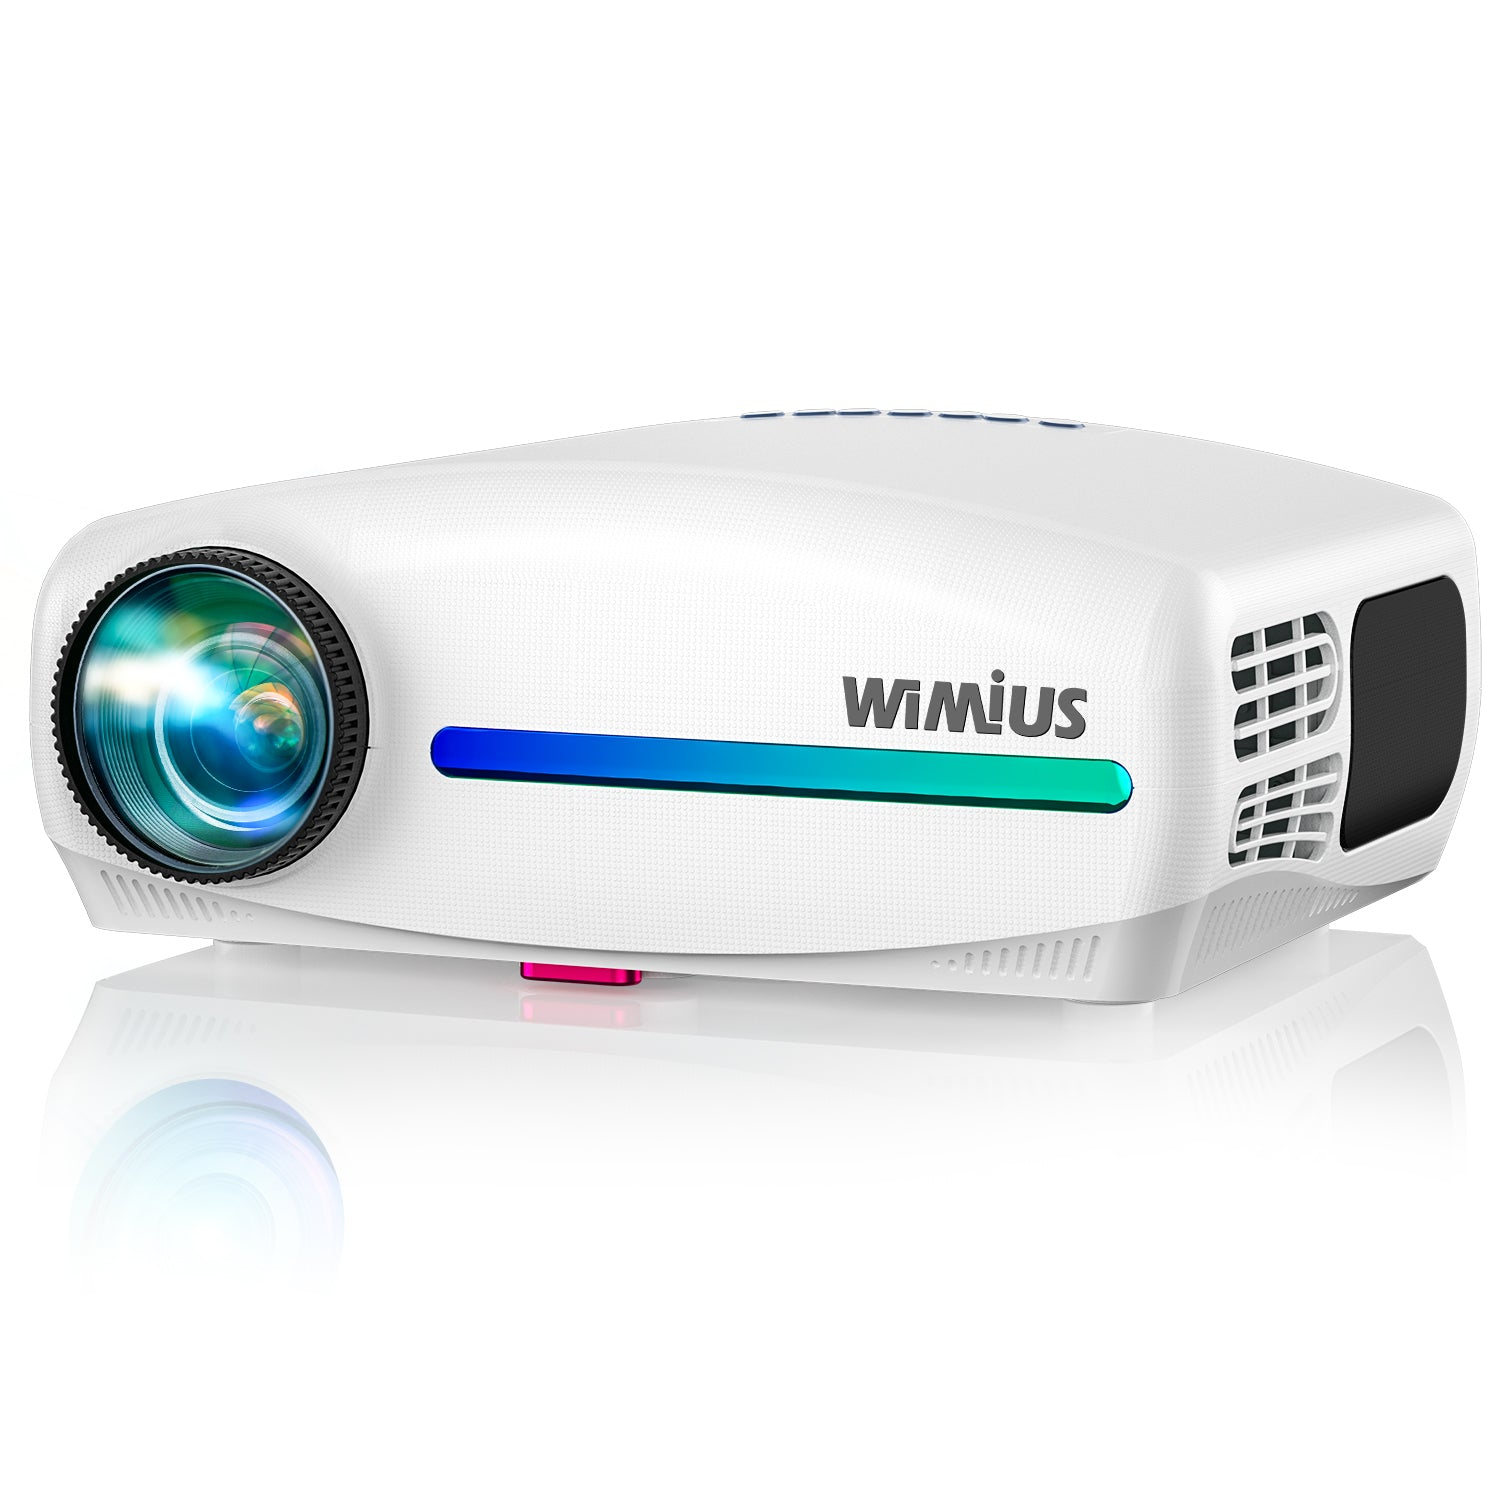 WiMiUS Video Projector - S1 - Wimius